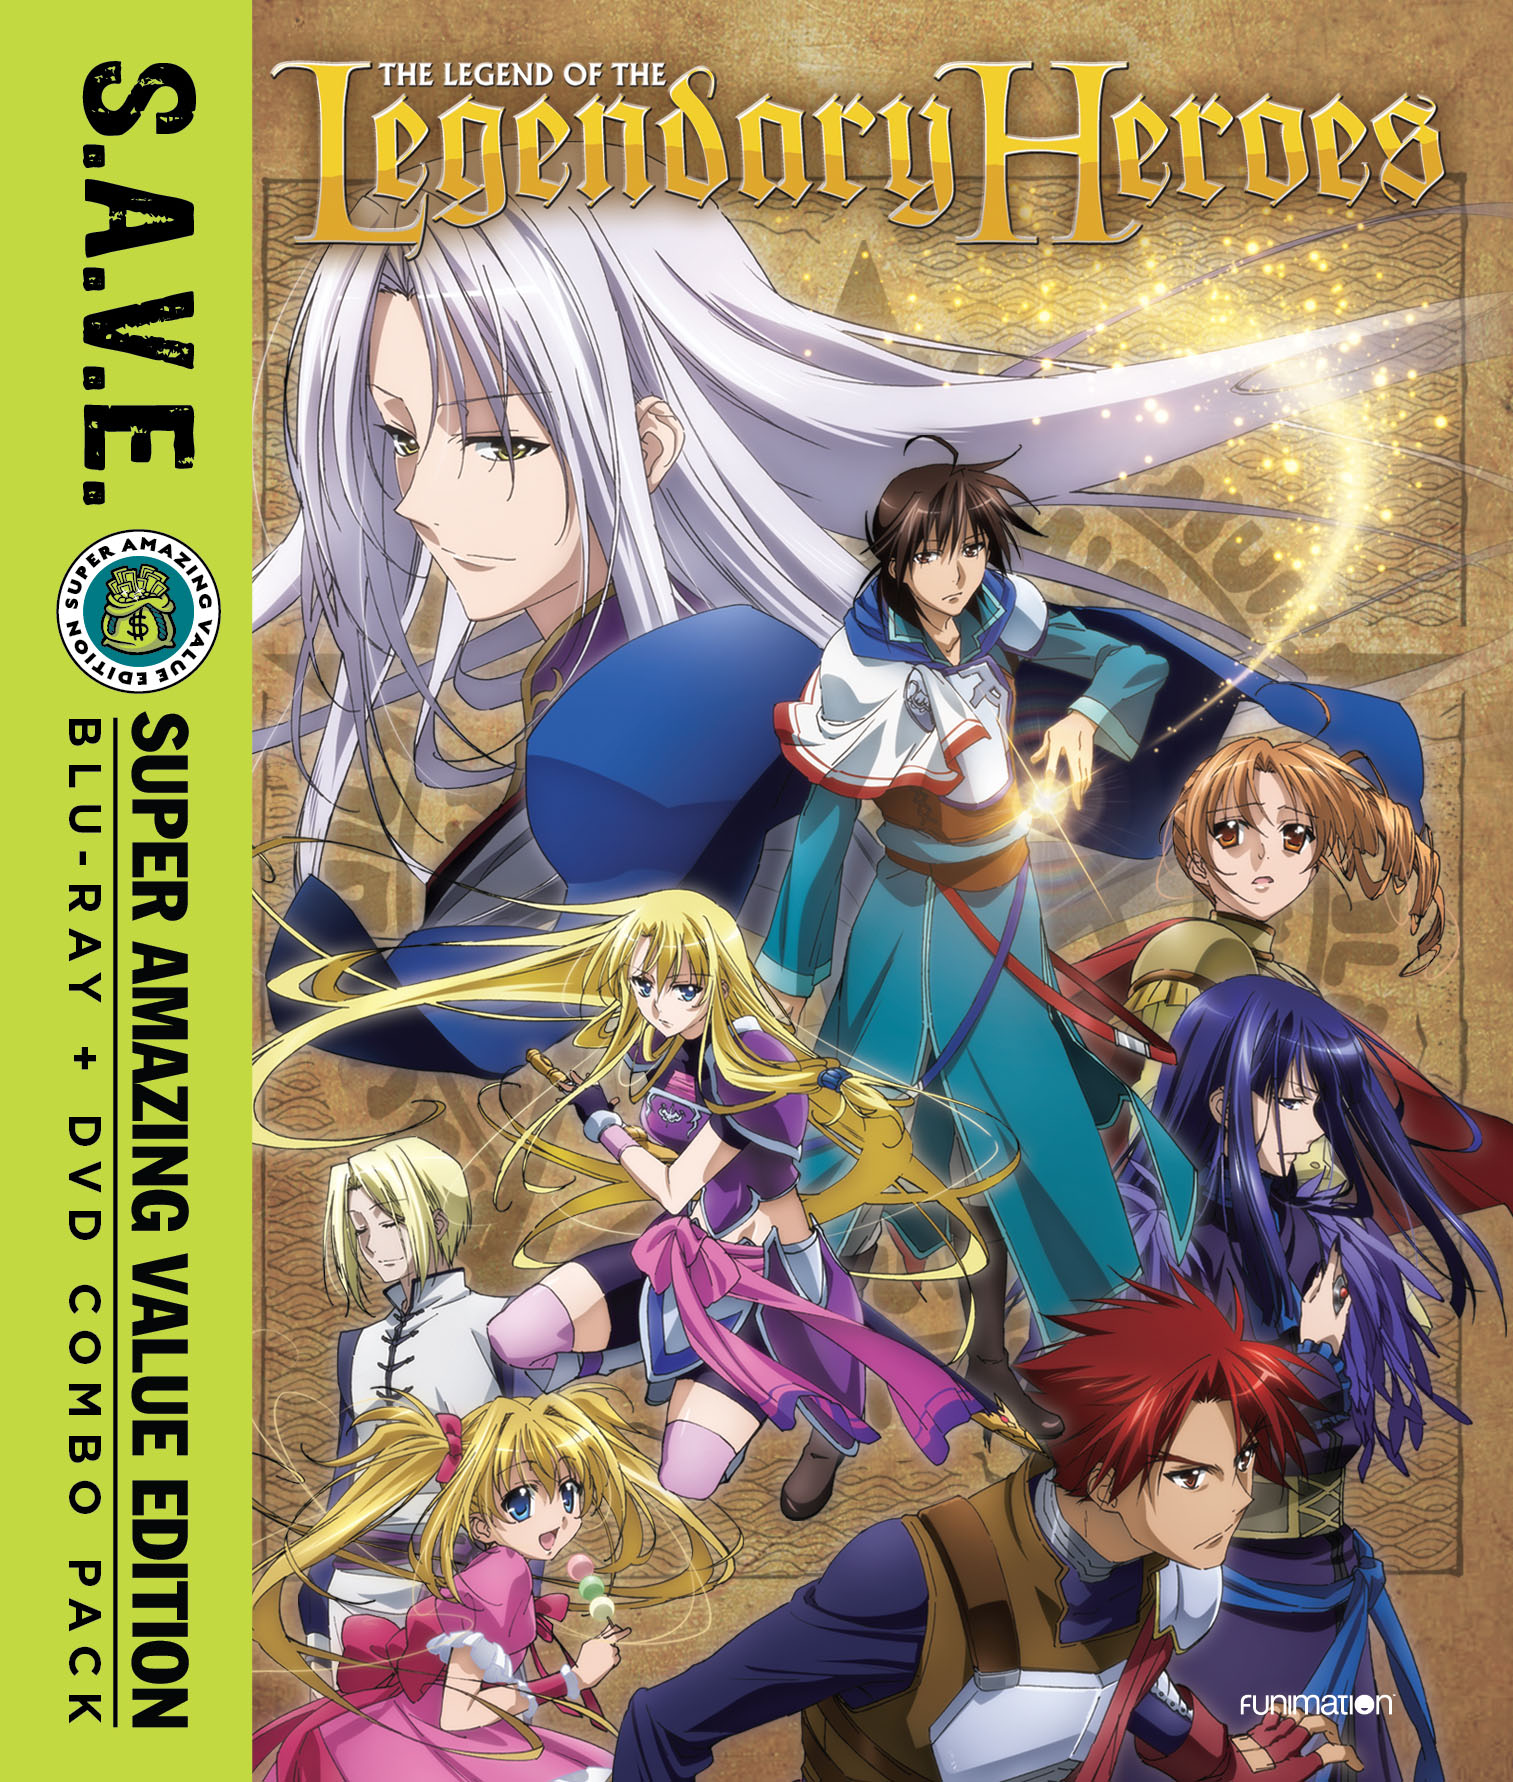 The Legend of the Legendary Heroes Blu-ray/DVD SAVE Edition 704400089541